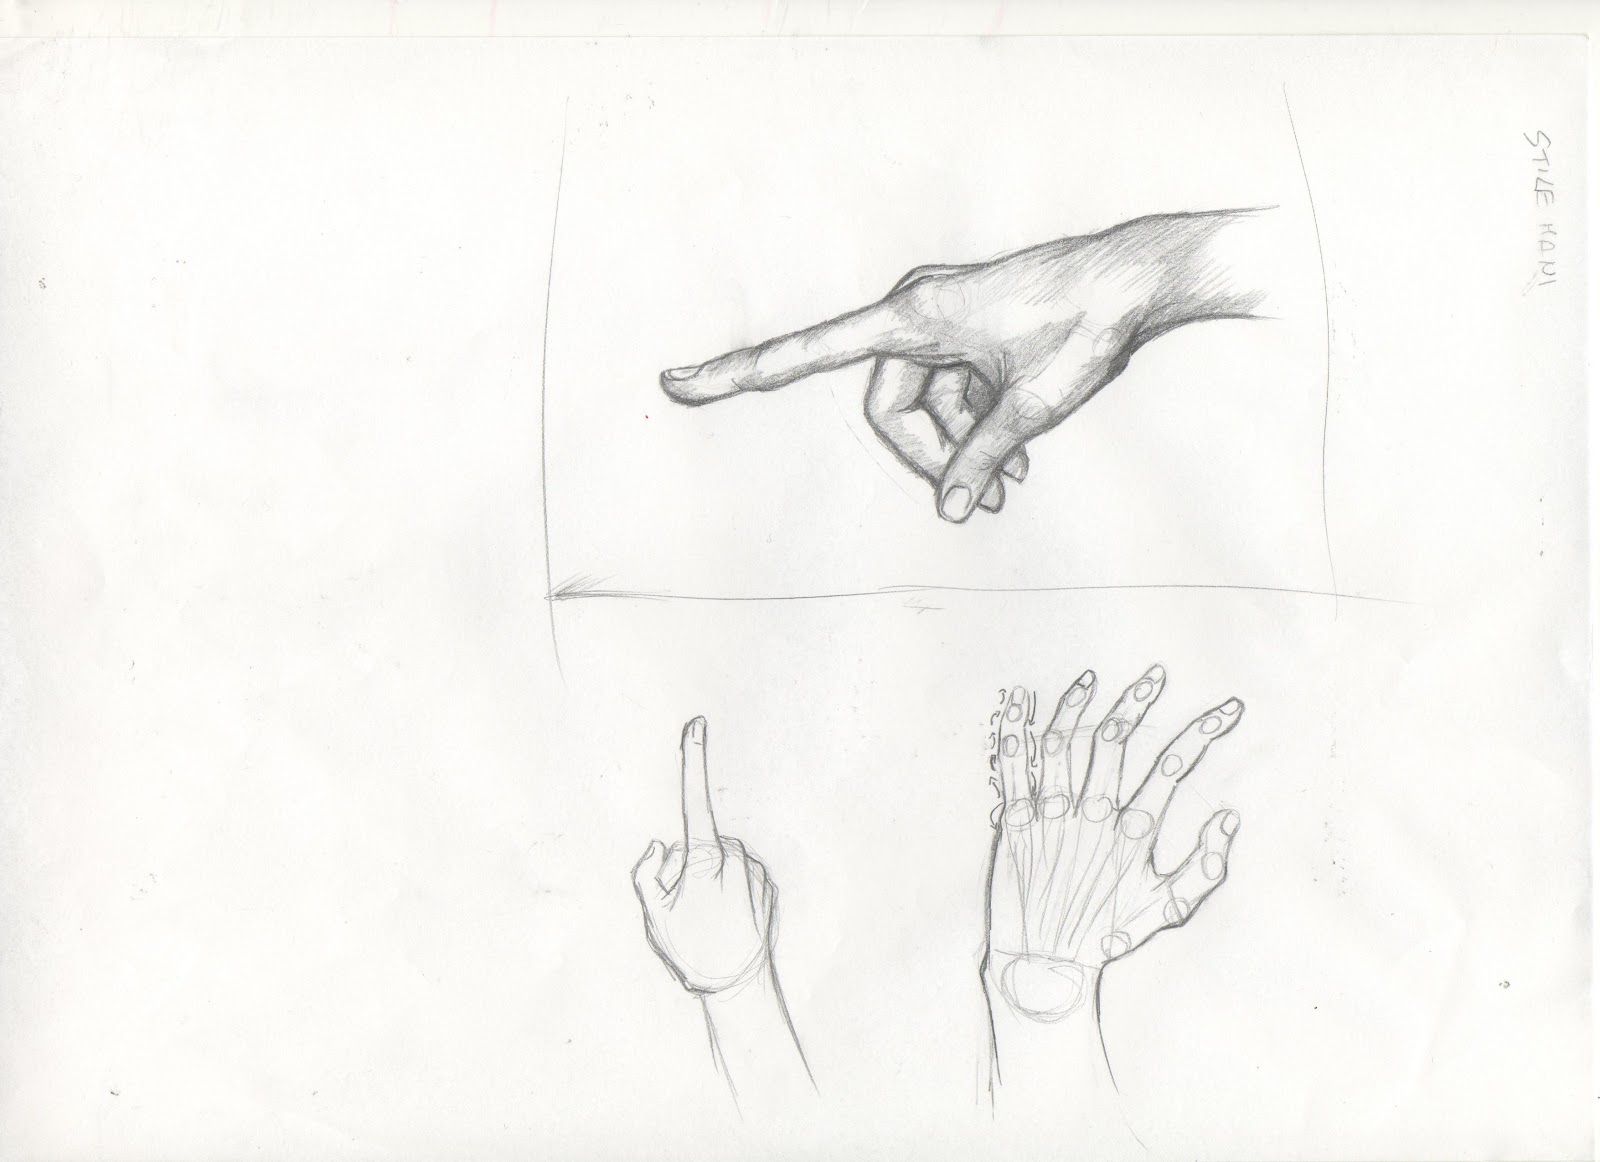 How To Drawhand Come Disegnare Le Mani